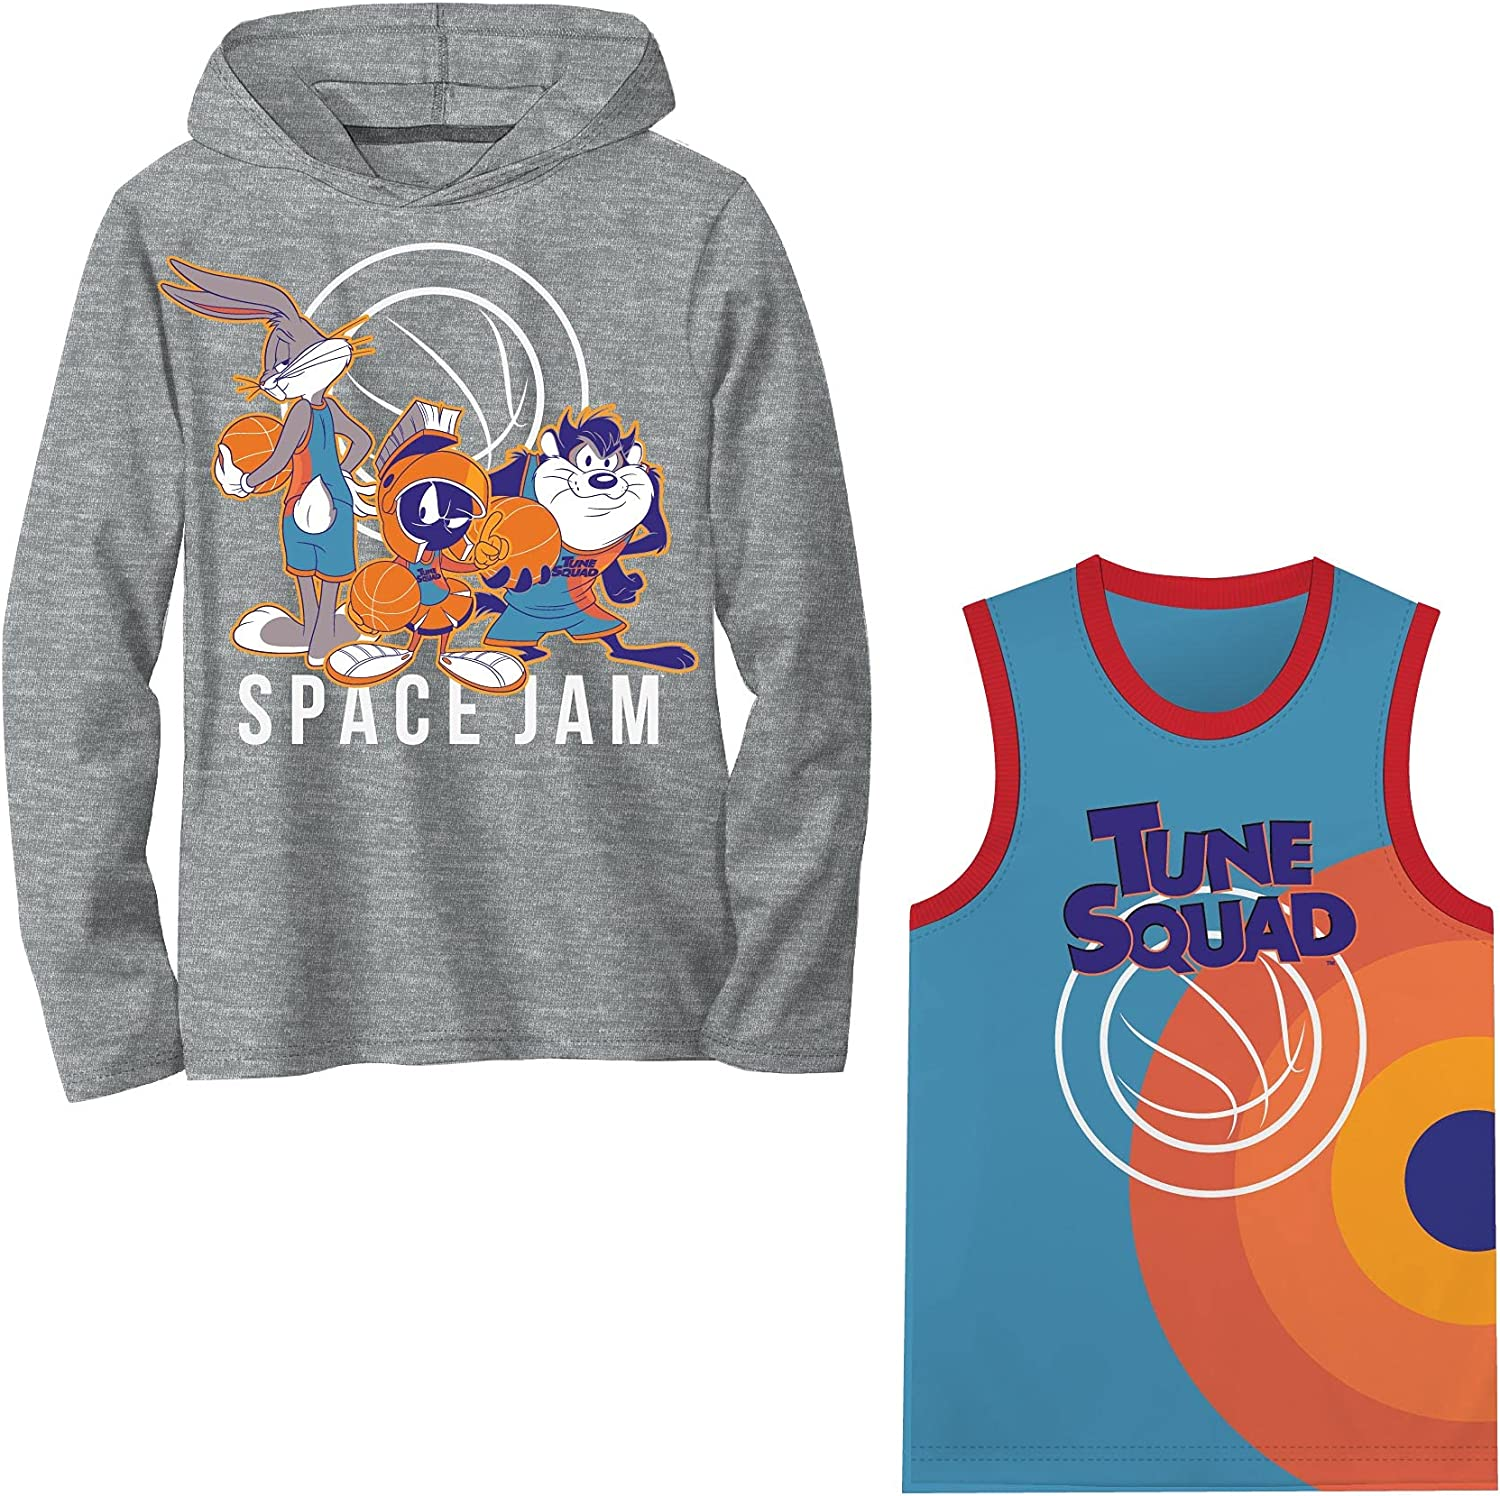 Space Jam 2 A New Legacy T-shirt Pullover Hoodie with Tank Jersey Bundle 2-Pack